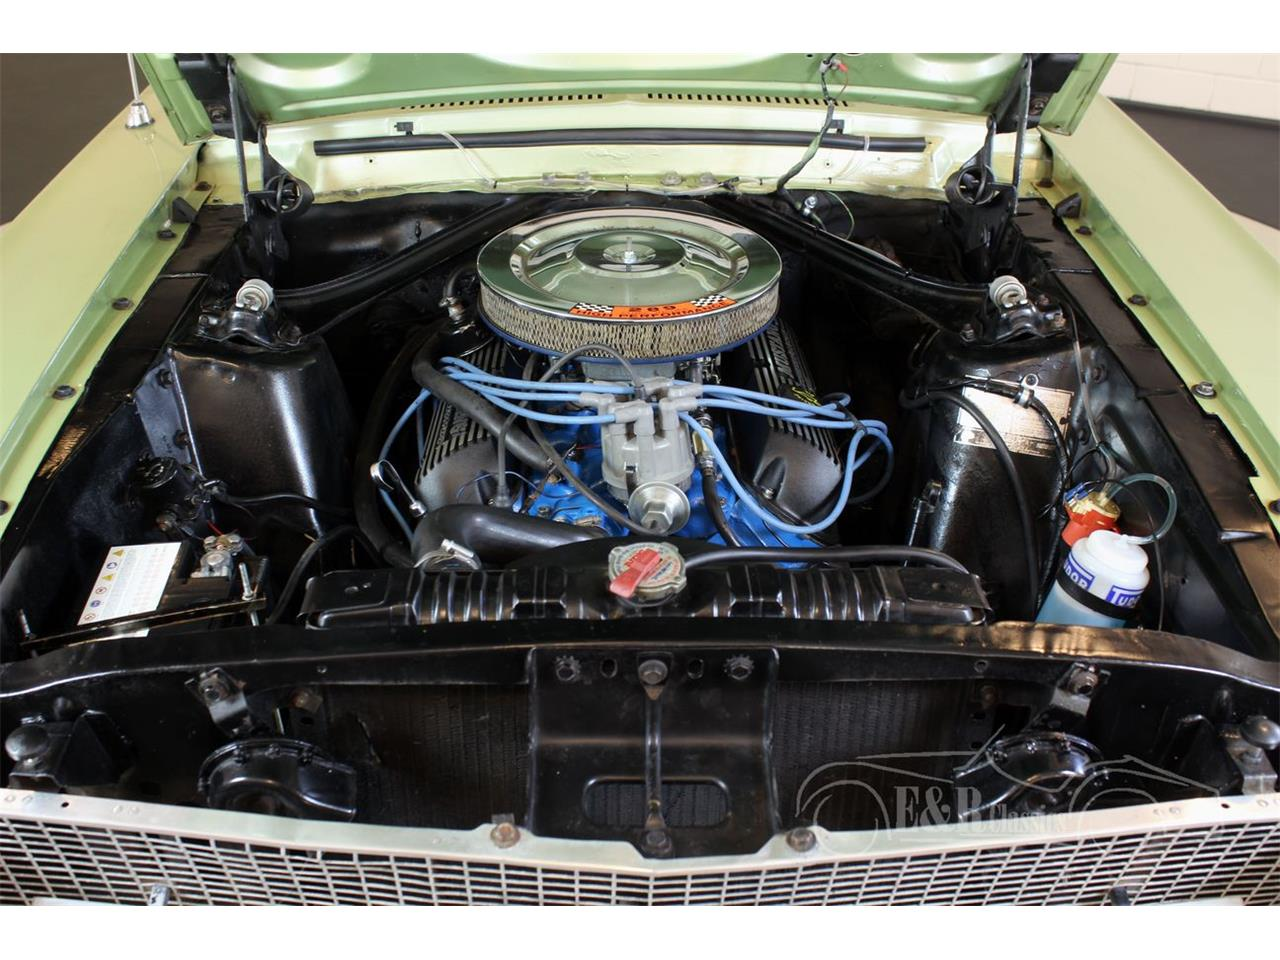 Large Picture of 1967 Mustang - $39,035.00 Offered by E & R Classics - Q2ZB